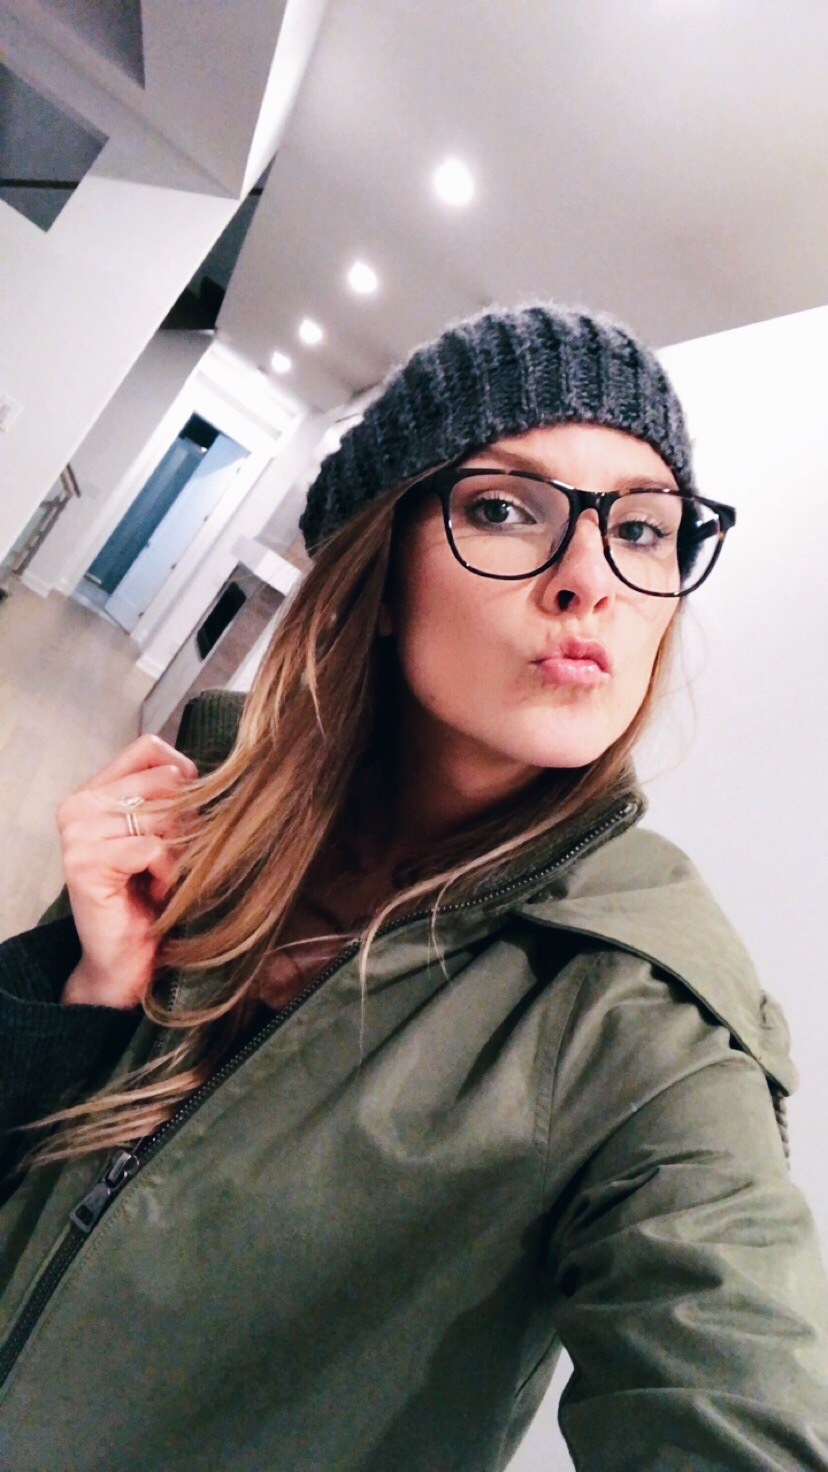 1 person, selfie, girl wearing a beanie and glasses